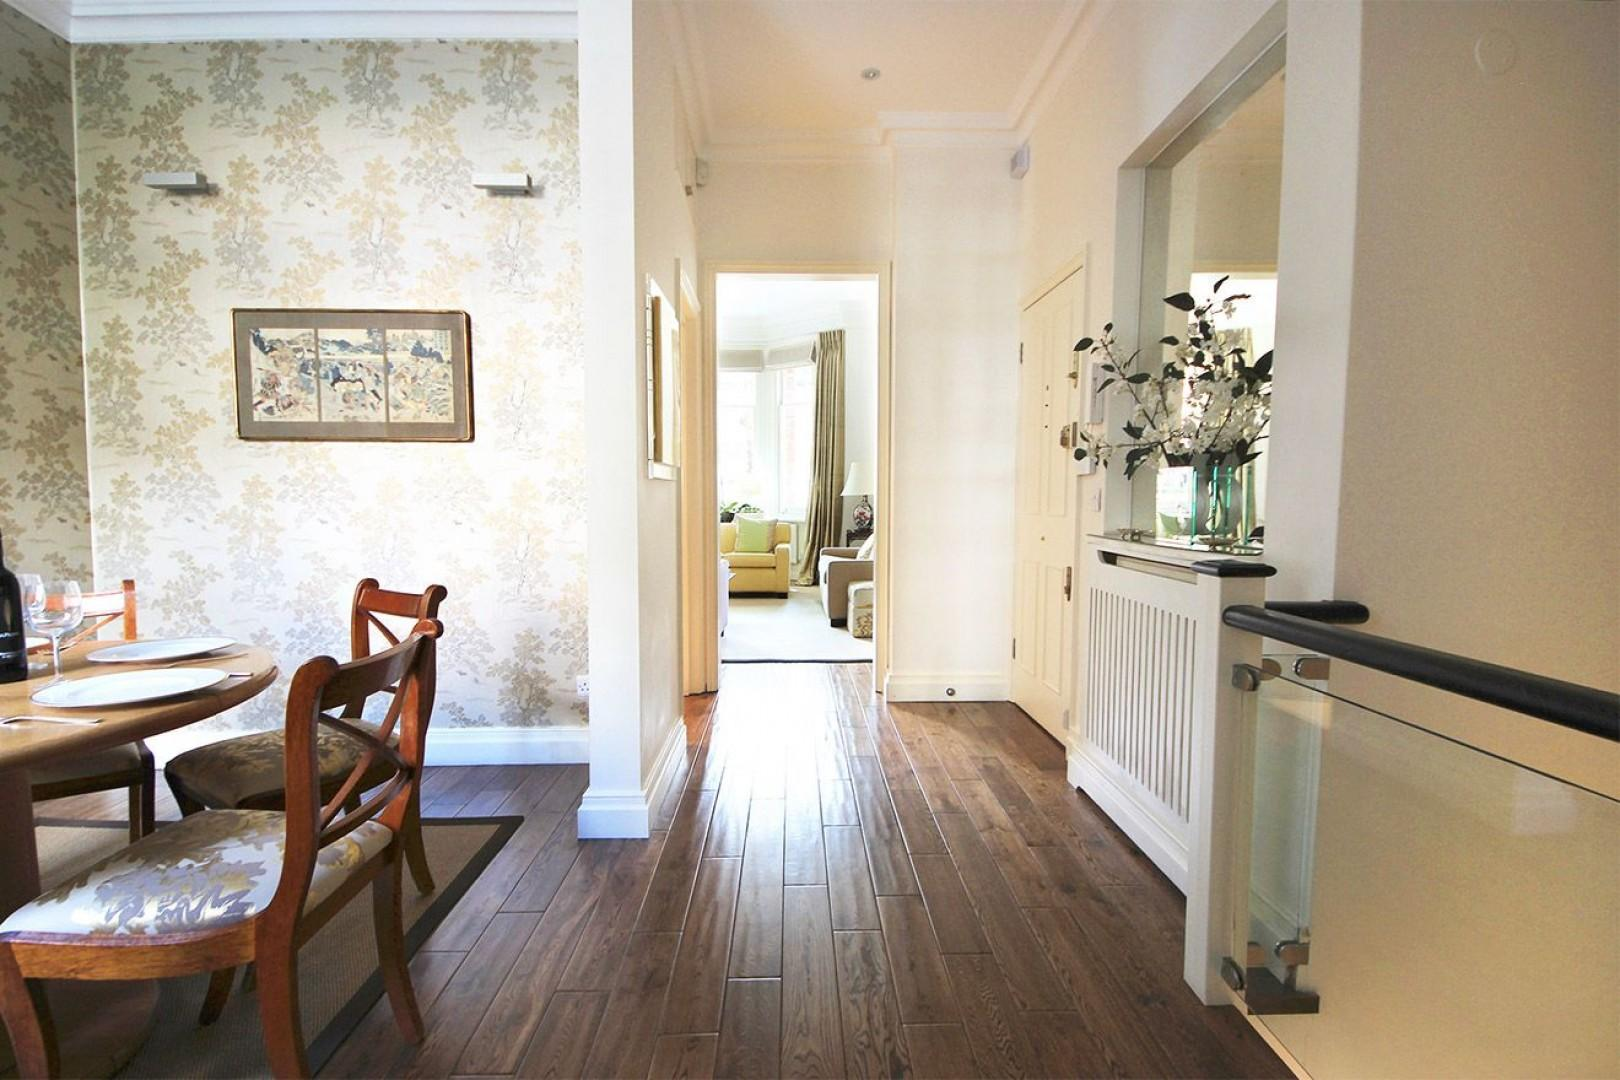 Hallway leads from living room to dining room and kitchen